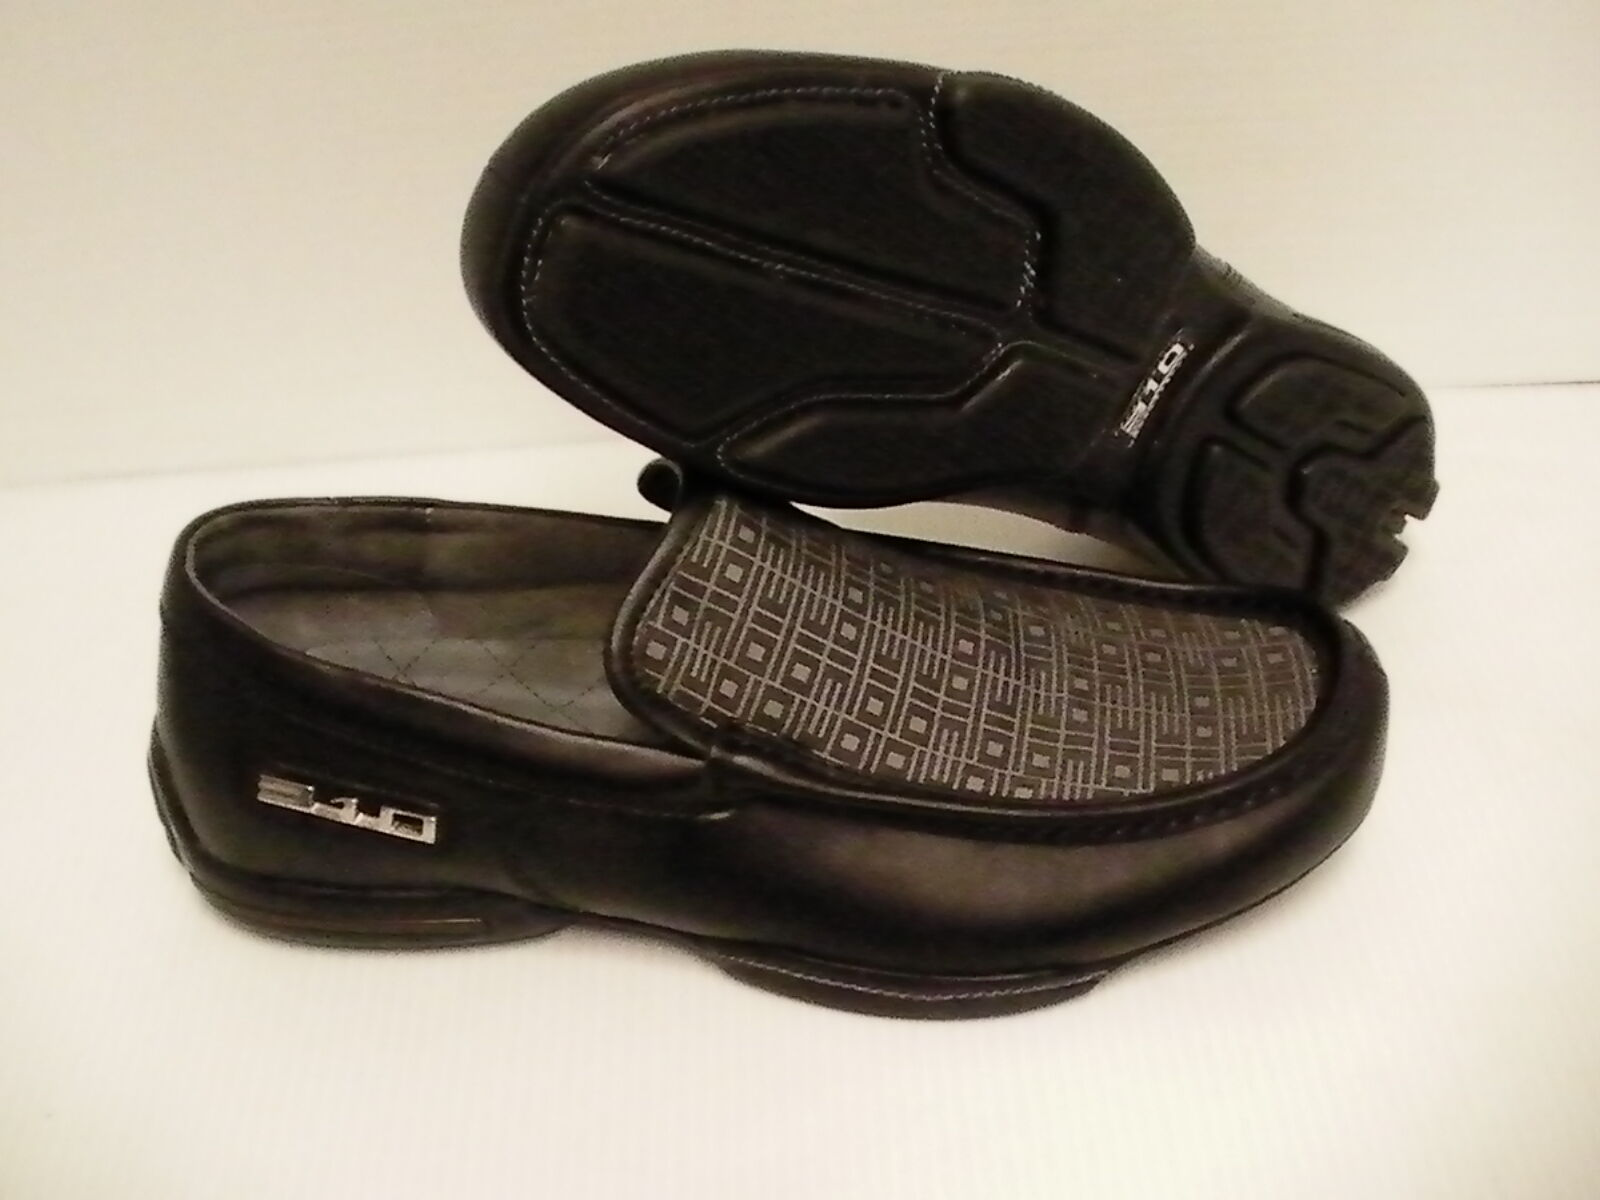 310 motoring shoes canning slip-on casual slip-on canning black/gray size 11.5 us new with box be9840